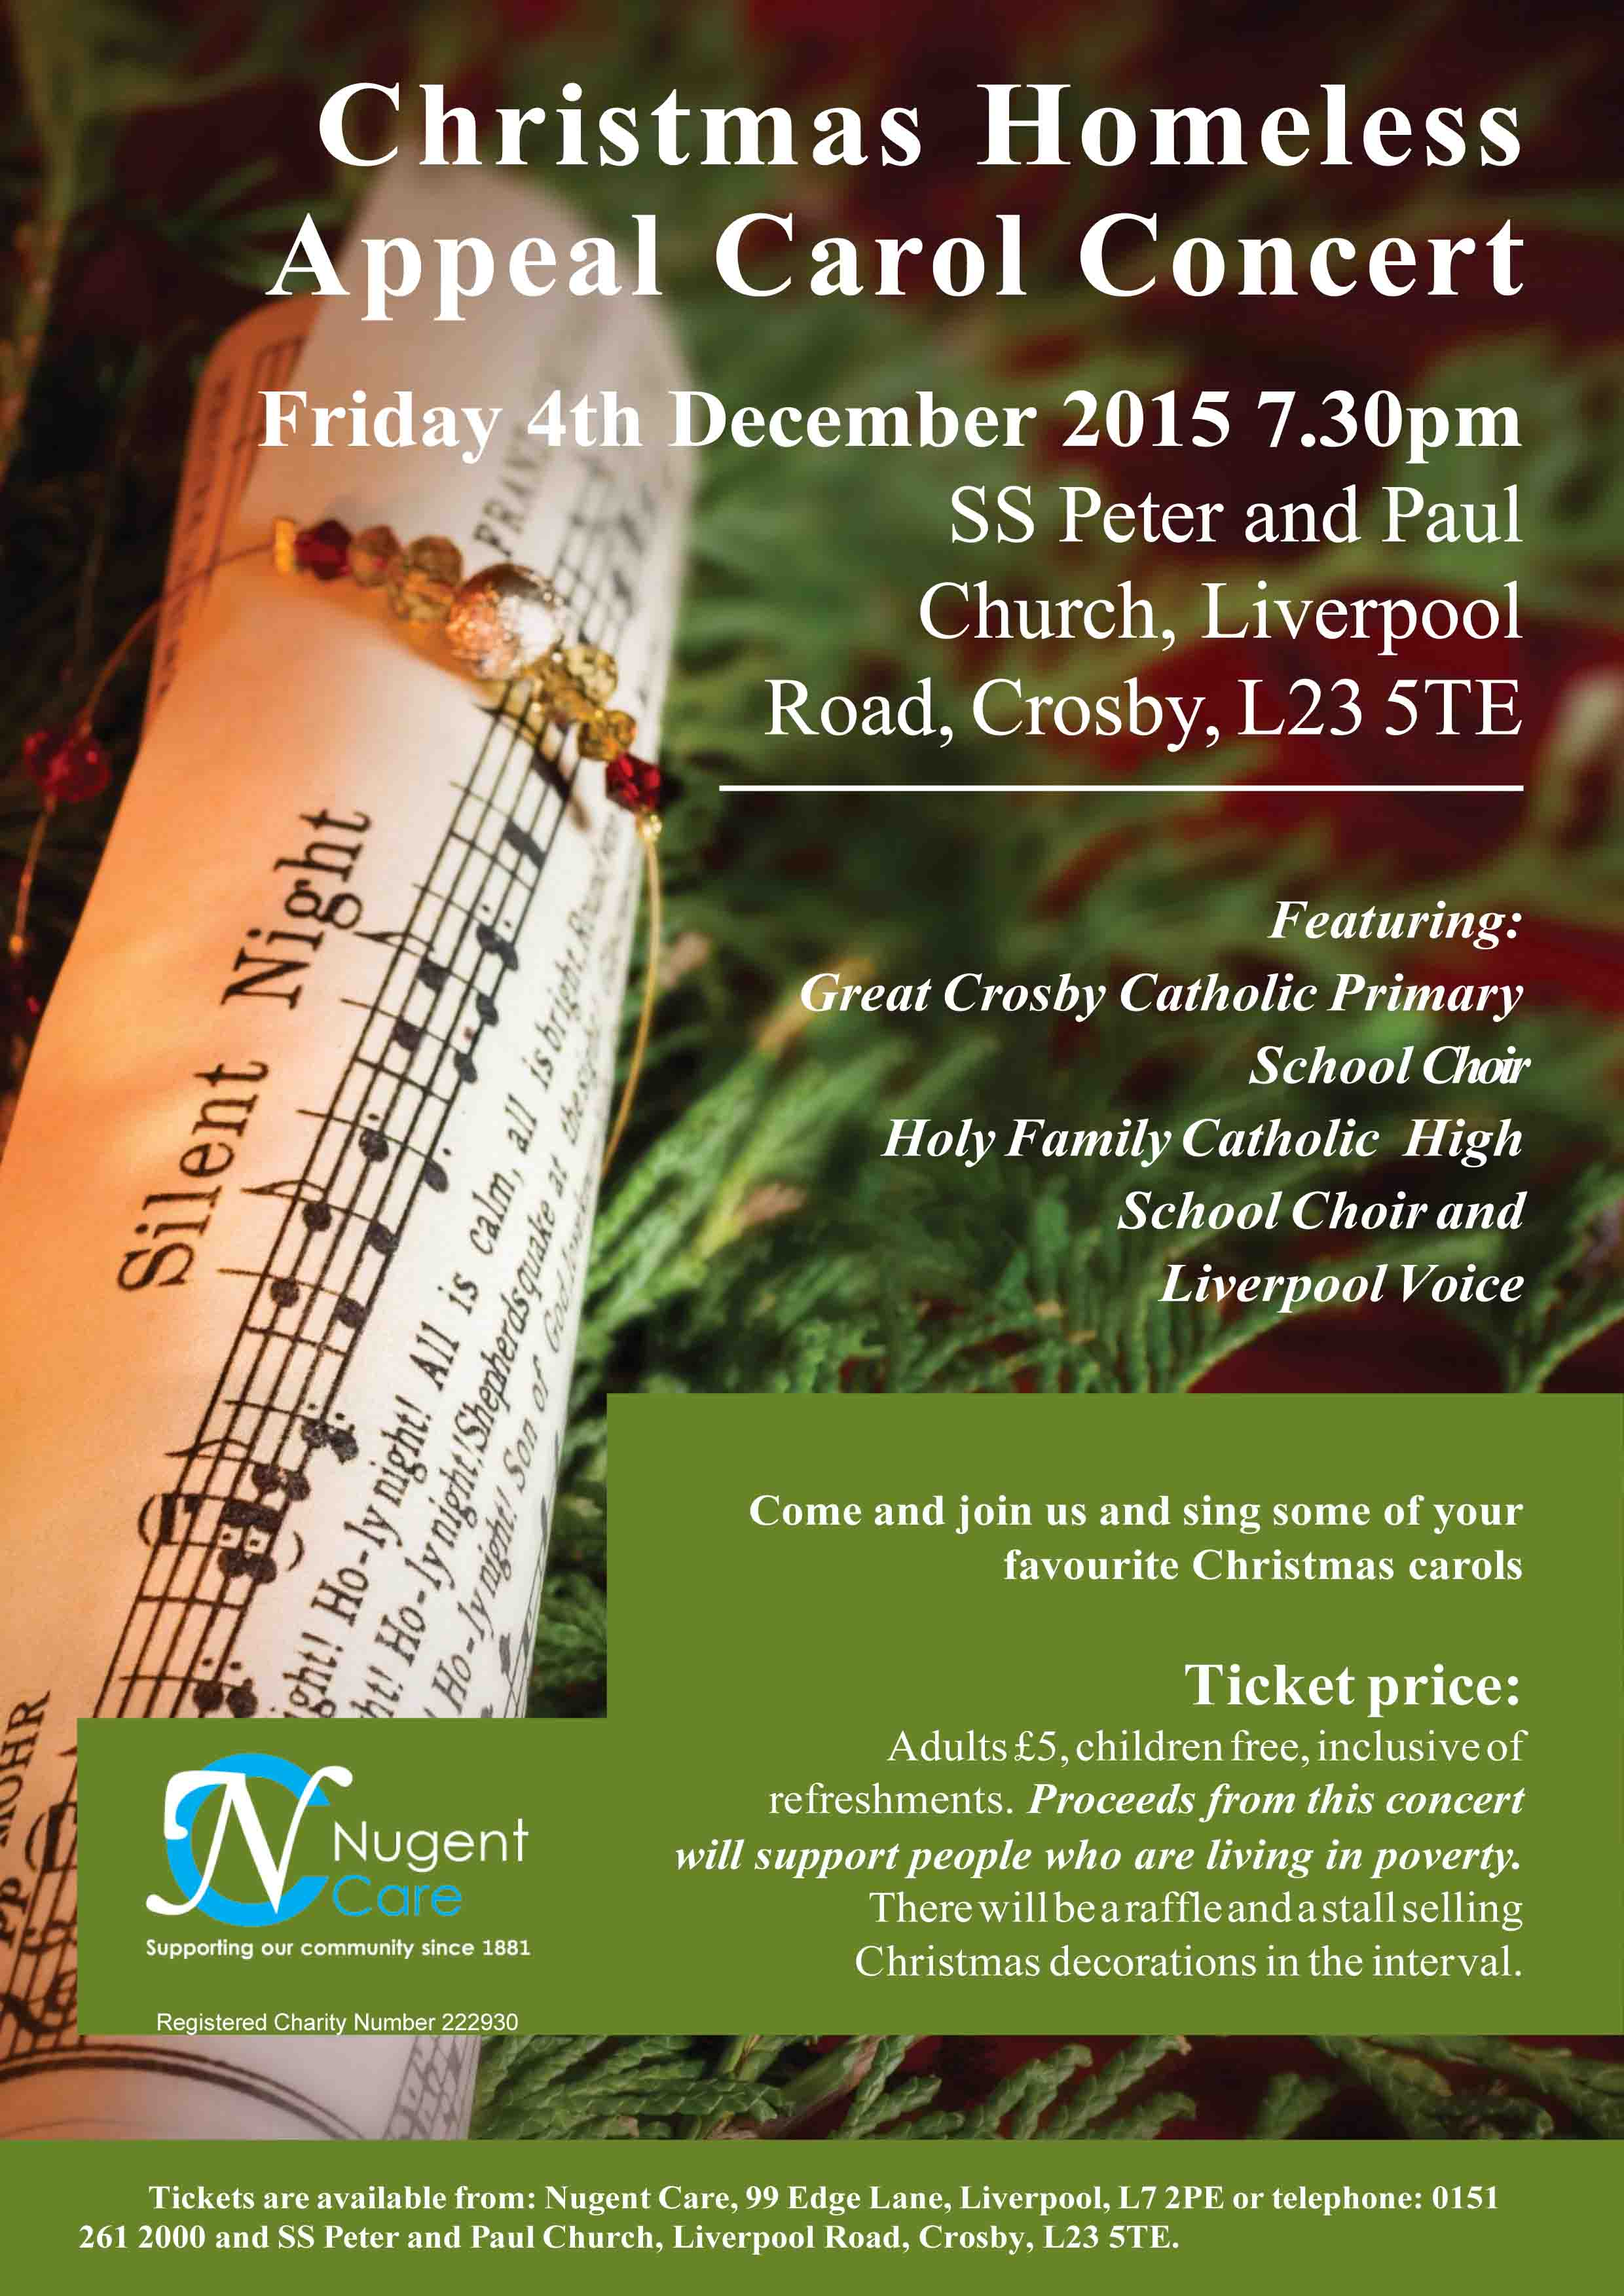 Christmas Homeless Appeal Carol Concert poster by Chris Williams